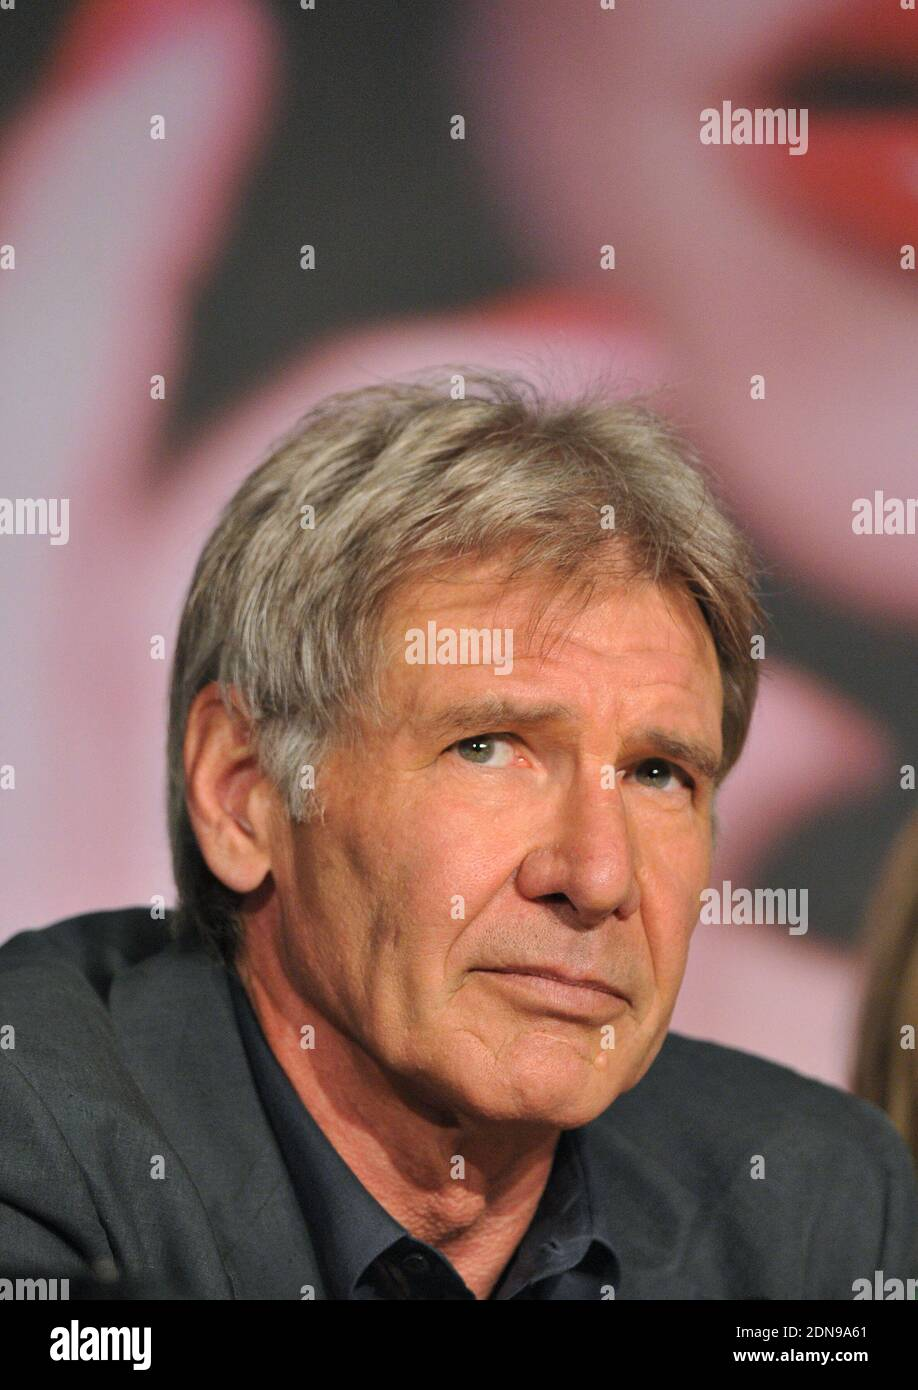 File Photo Harrison Ford Attends A Press Conference For The Film Indiana Jones And The Kingdom Of The Crystal Skull At The Palais Des Festivals During The 61st International Cannes Film